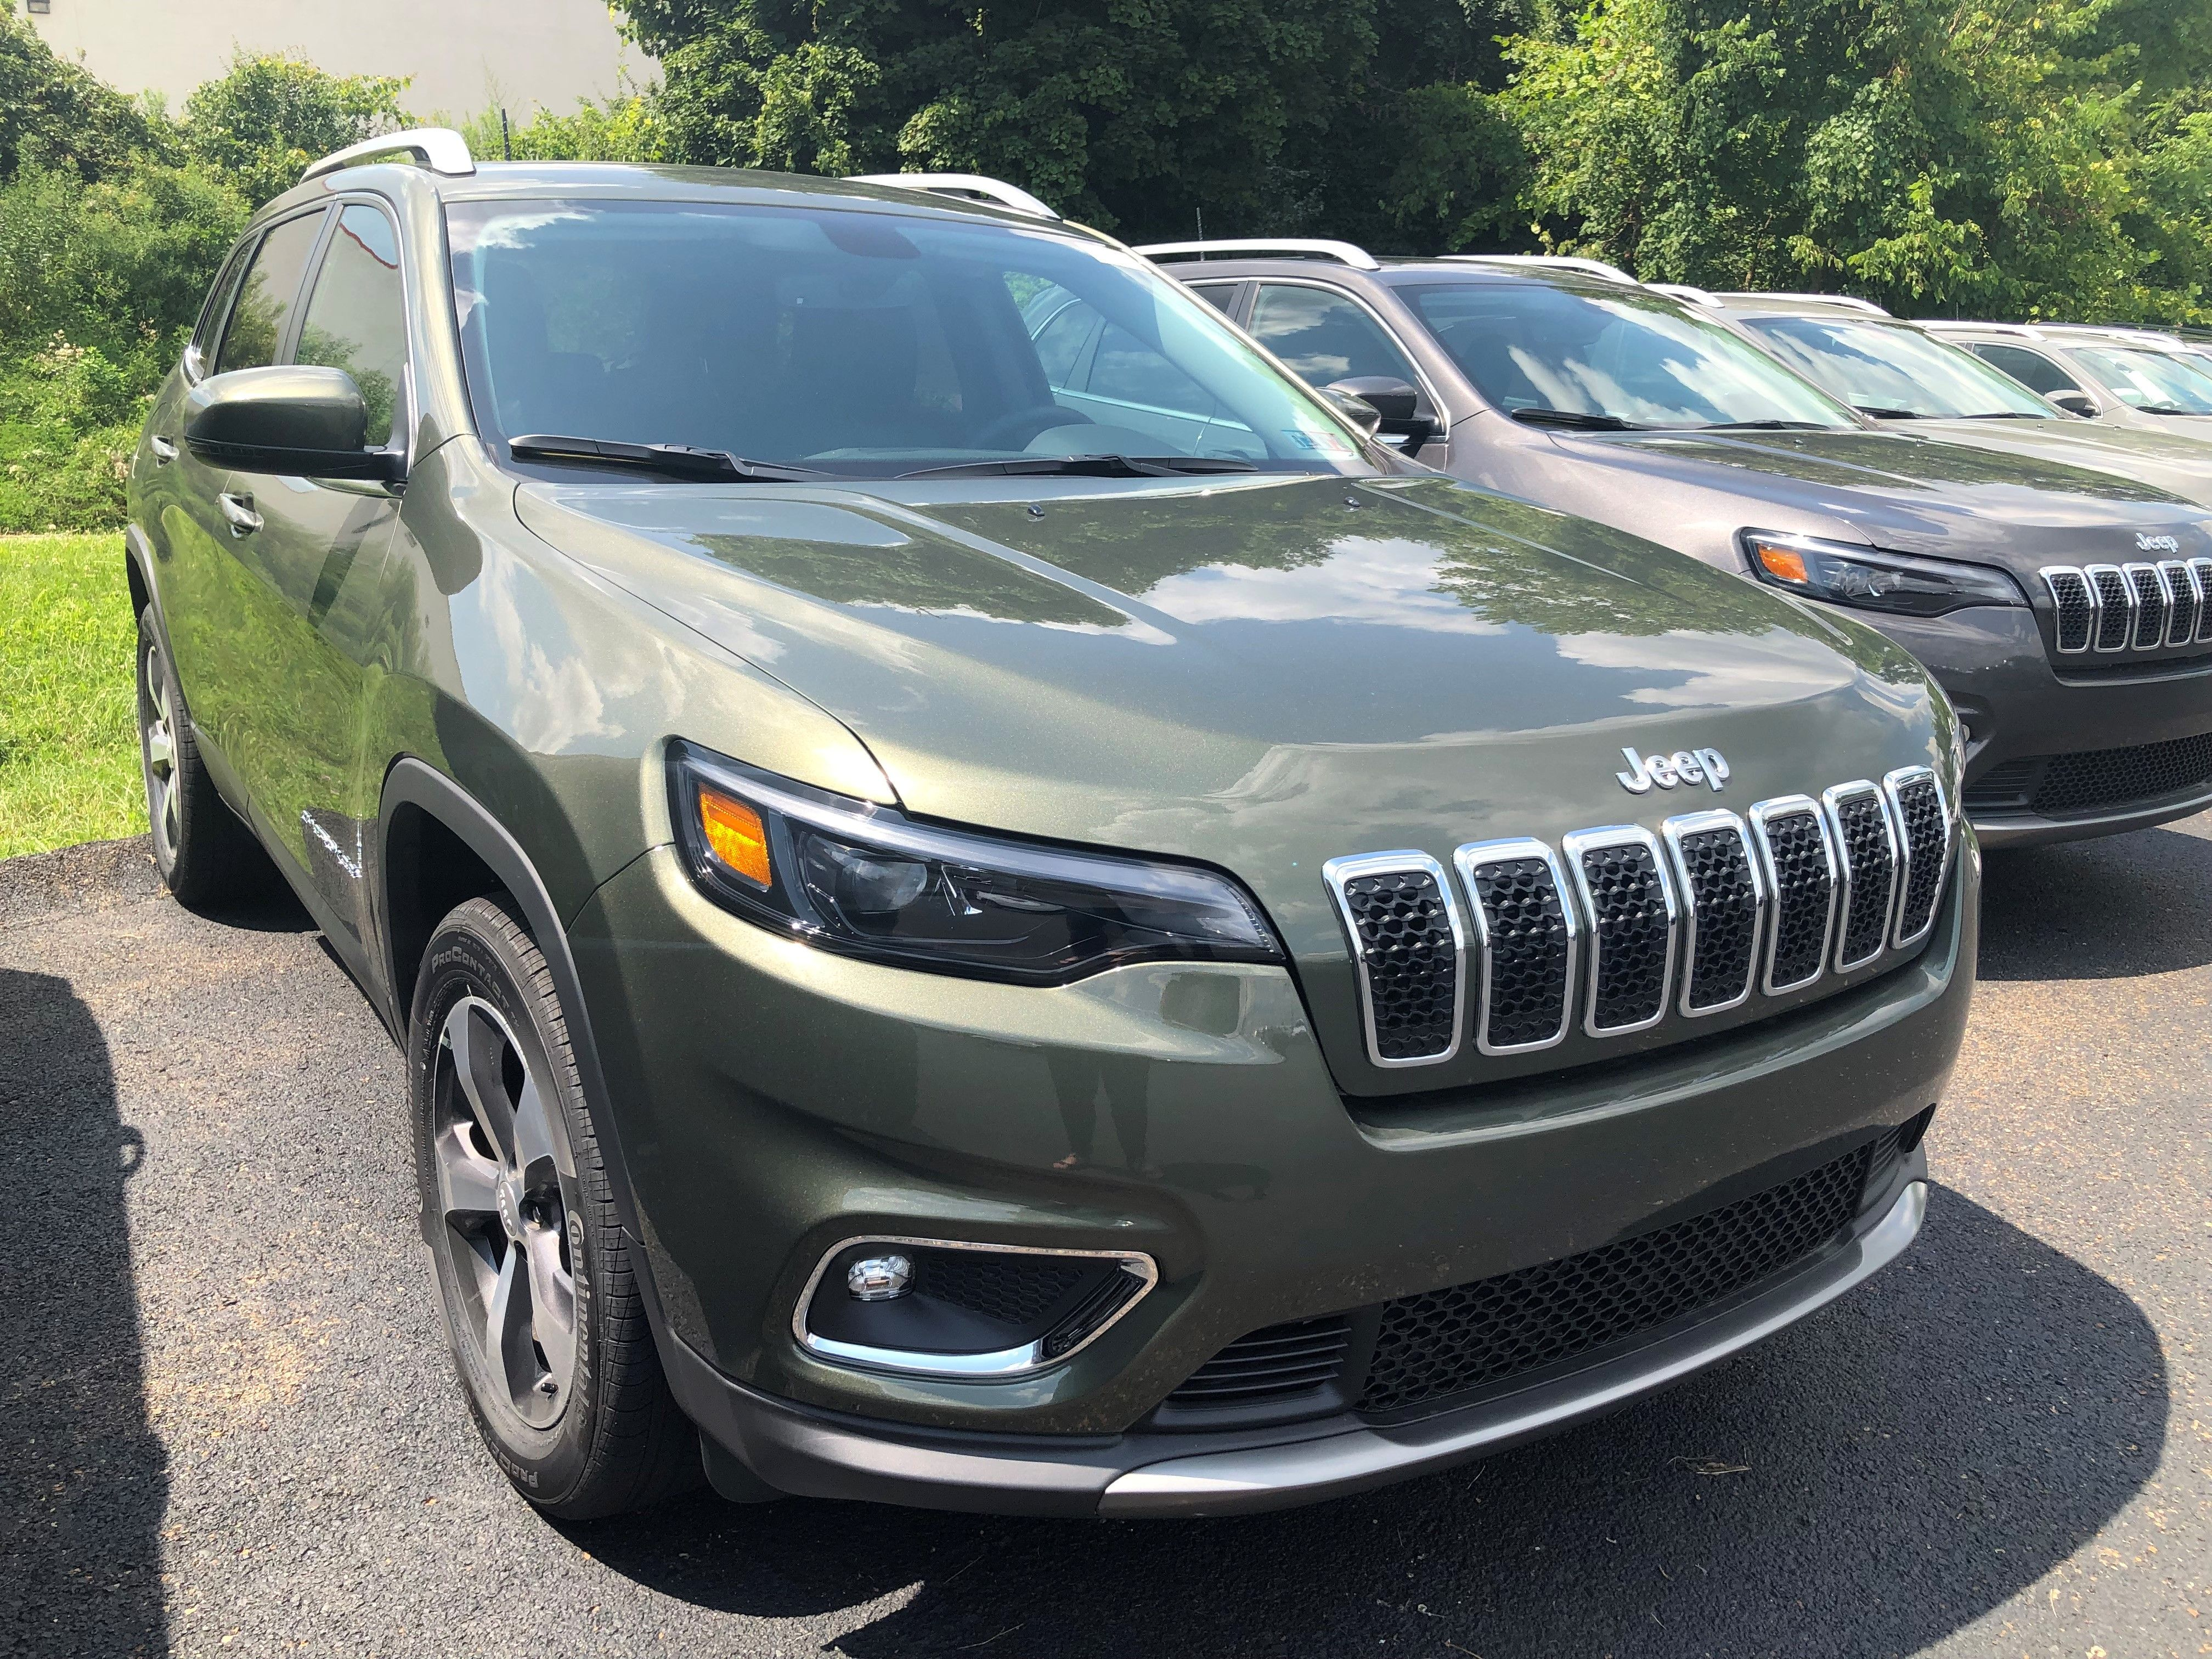 New Jeep Cherokee In Greensburg In 2020 Jeep Cherokee Jeep Green Jeep